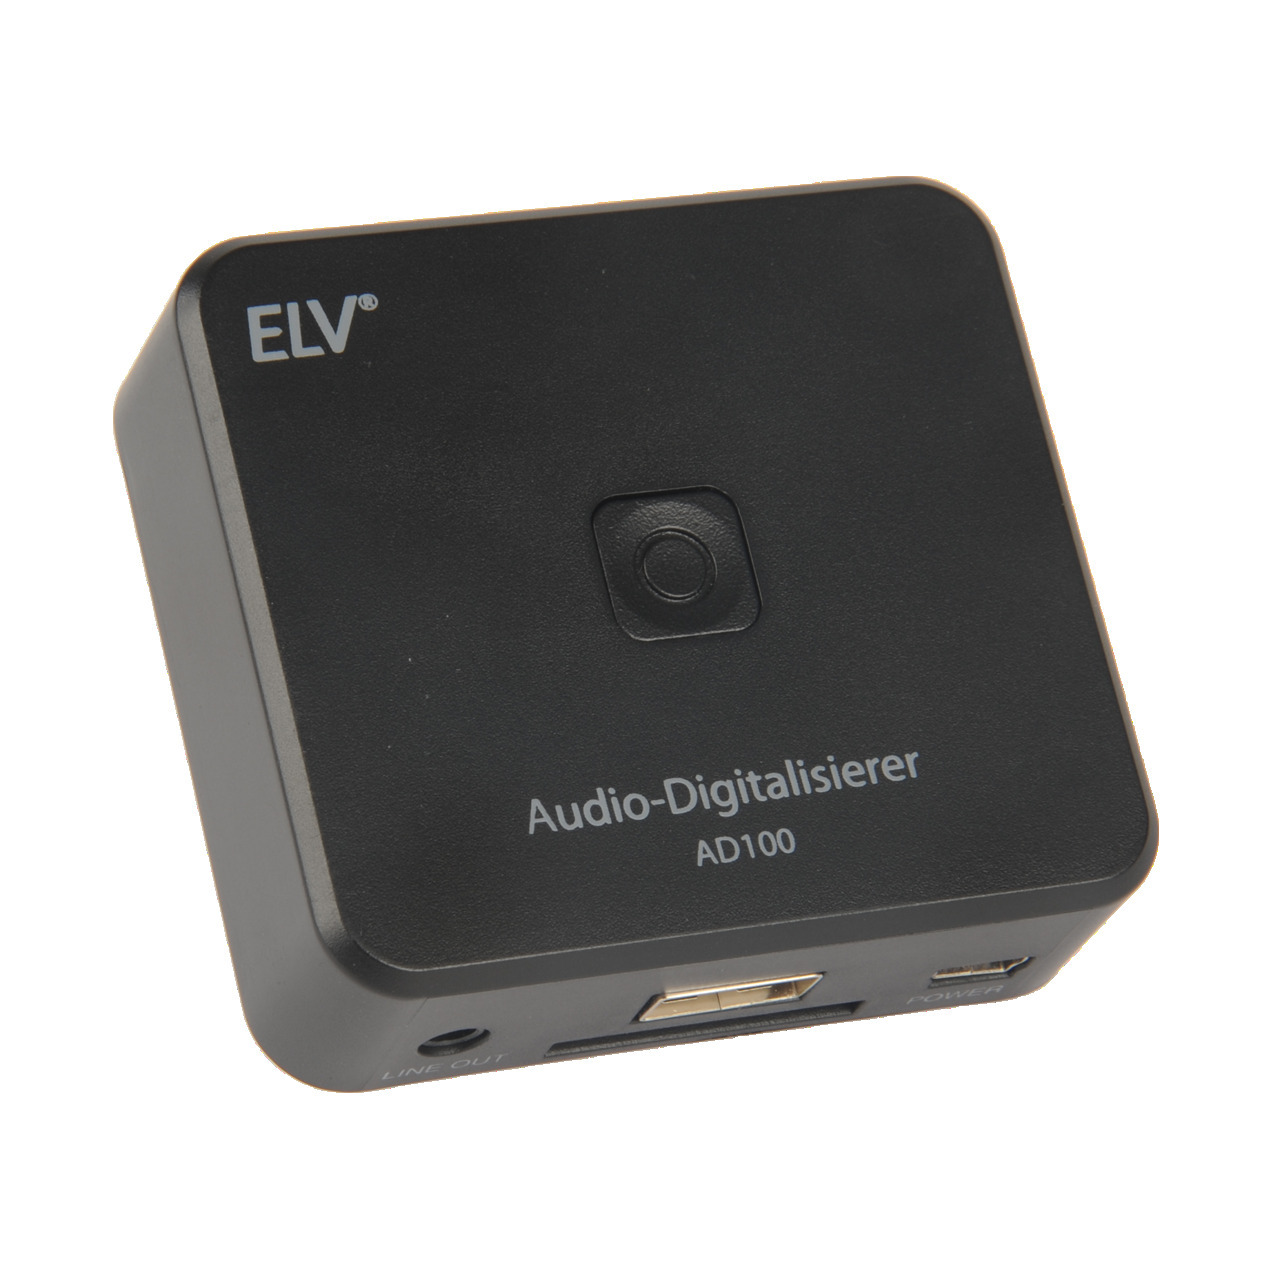 ELV Audio-Digitalisierer AD100- Stand-alone-Betrieb (ohne PC)- Playback-Funktion